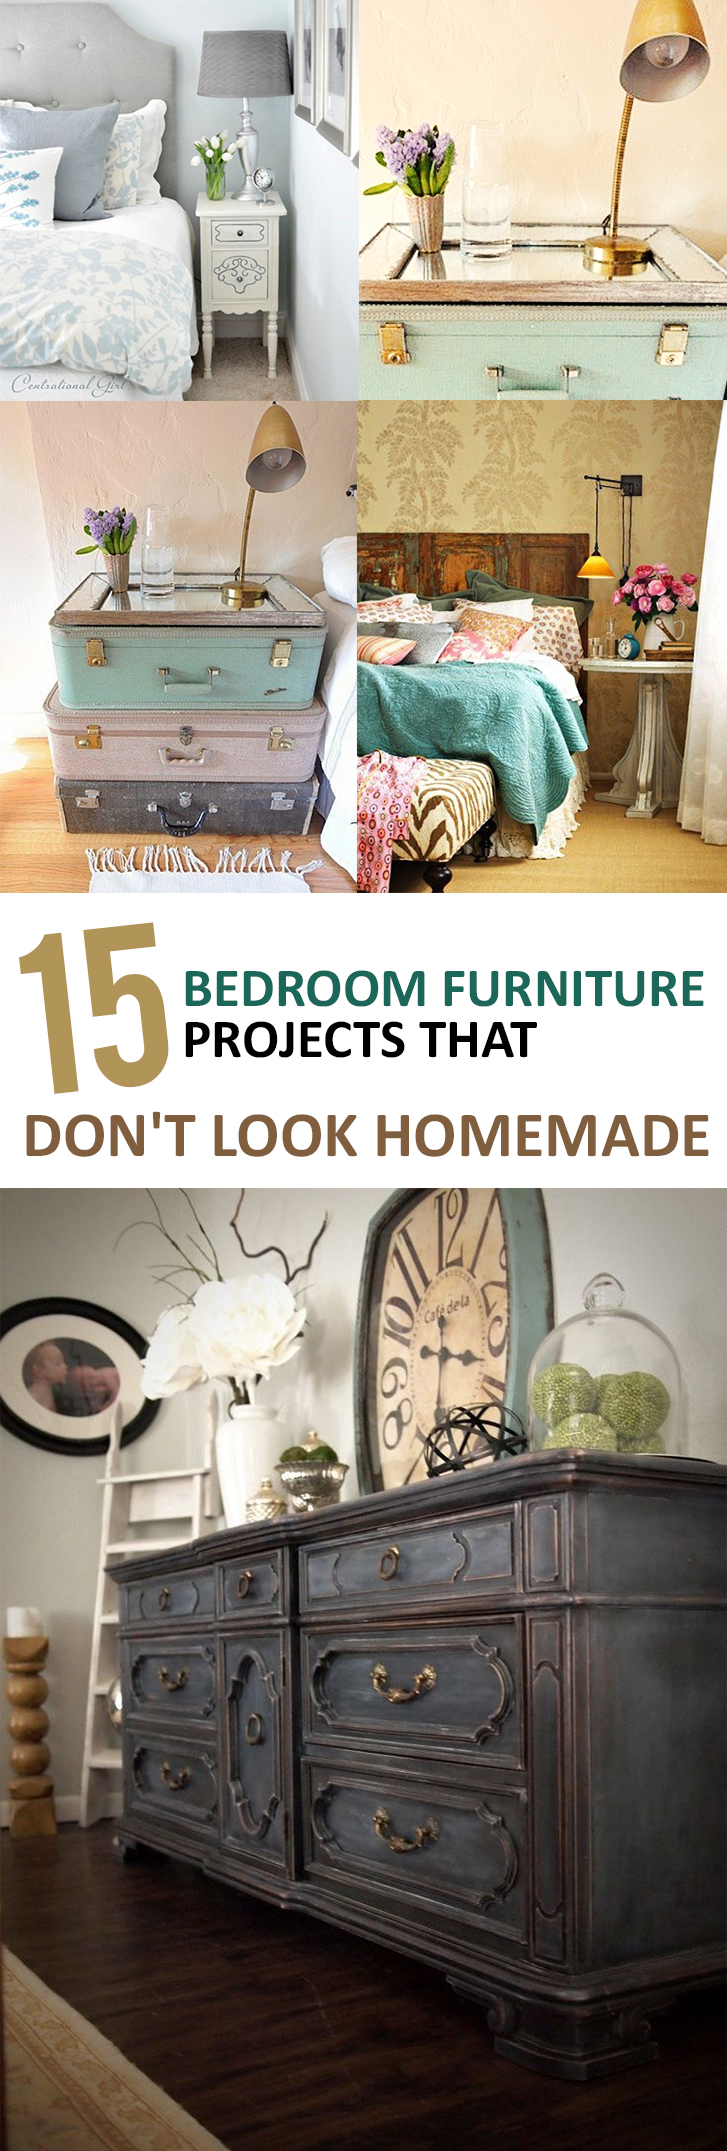 Furniture projects, bedroom furniture, bedroom furniture ideas, DIY furniture, easy furniture projects, popular pin, homemade projects, DIY bedroom decor, bedroom updates, easy bedroom projects.